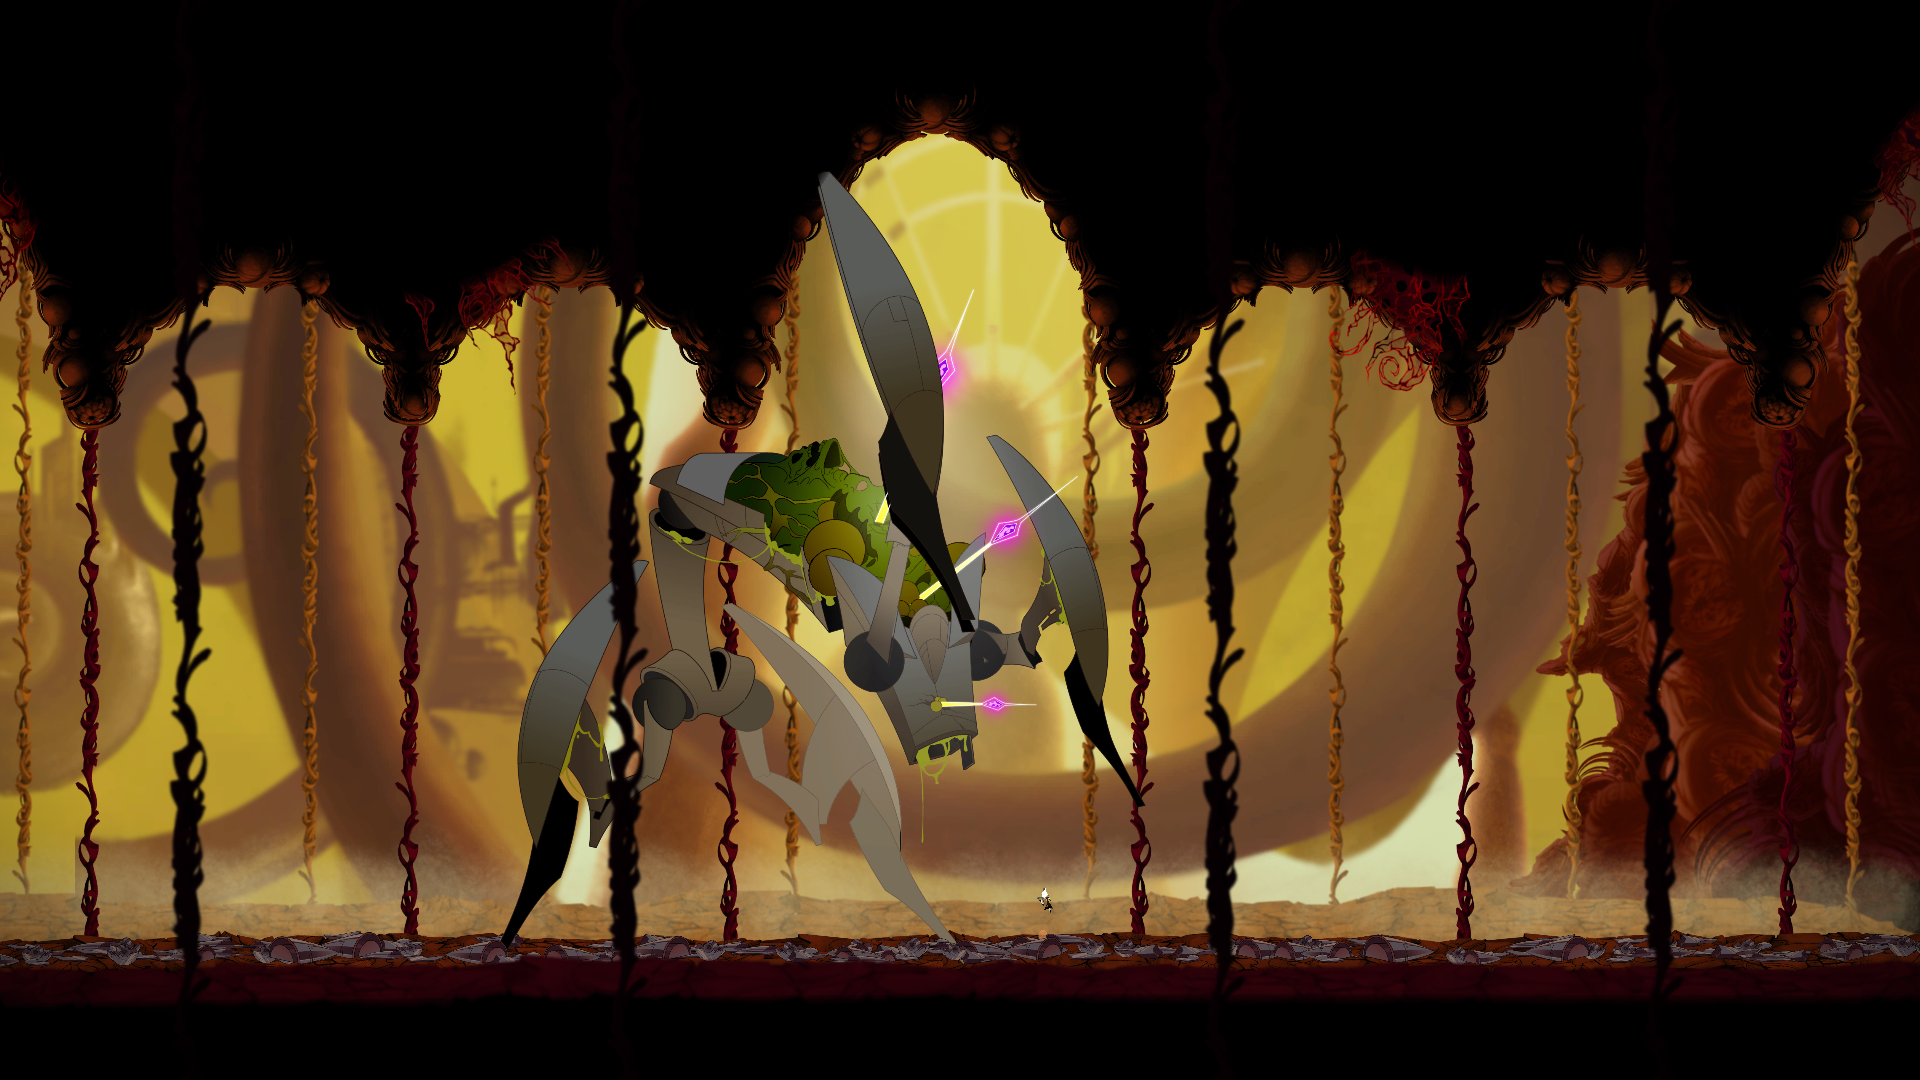 Sundered eldritch edition wallpapers read games review - Eldritch wallpaper ...